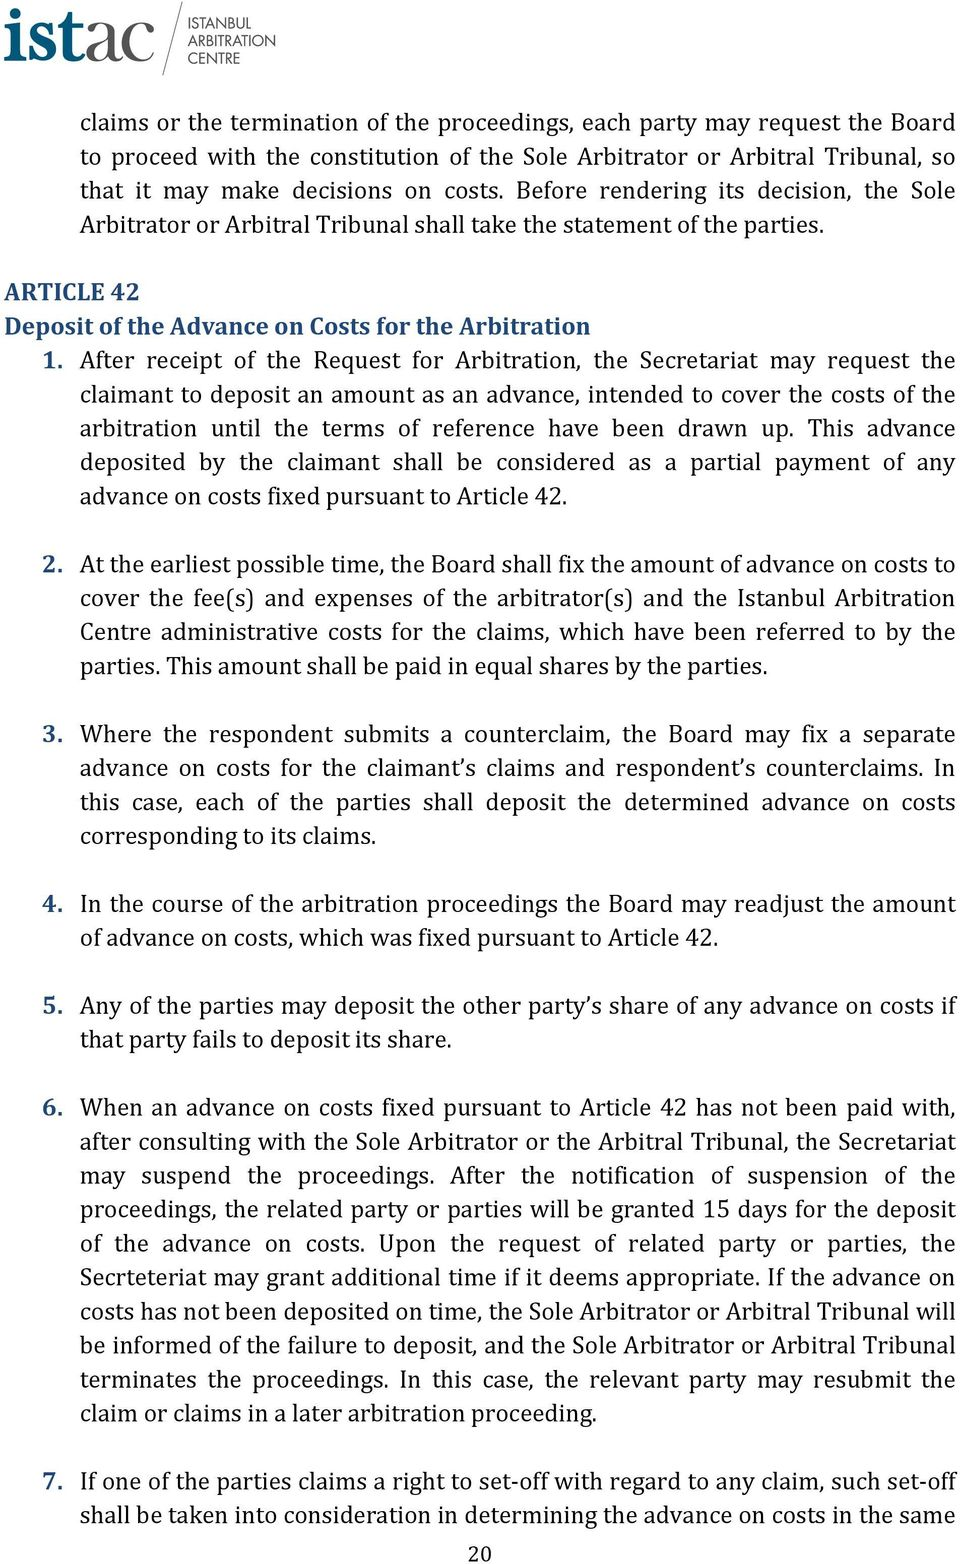 After receipt of the Request for Arbitration, the Secretariat may request the claimant to deposit an amount as an advance, intended to cover the costs of the arbitration until the terms of reference